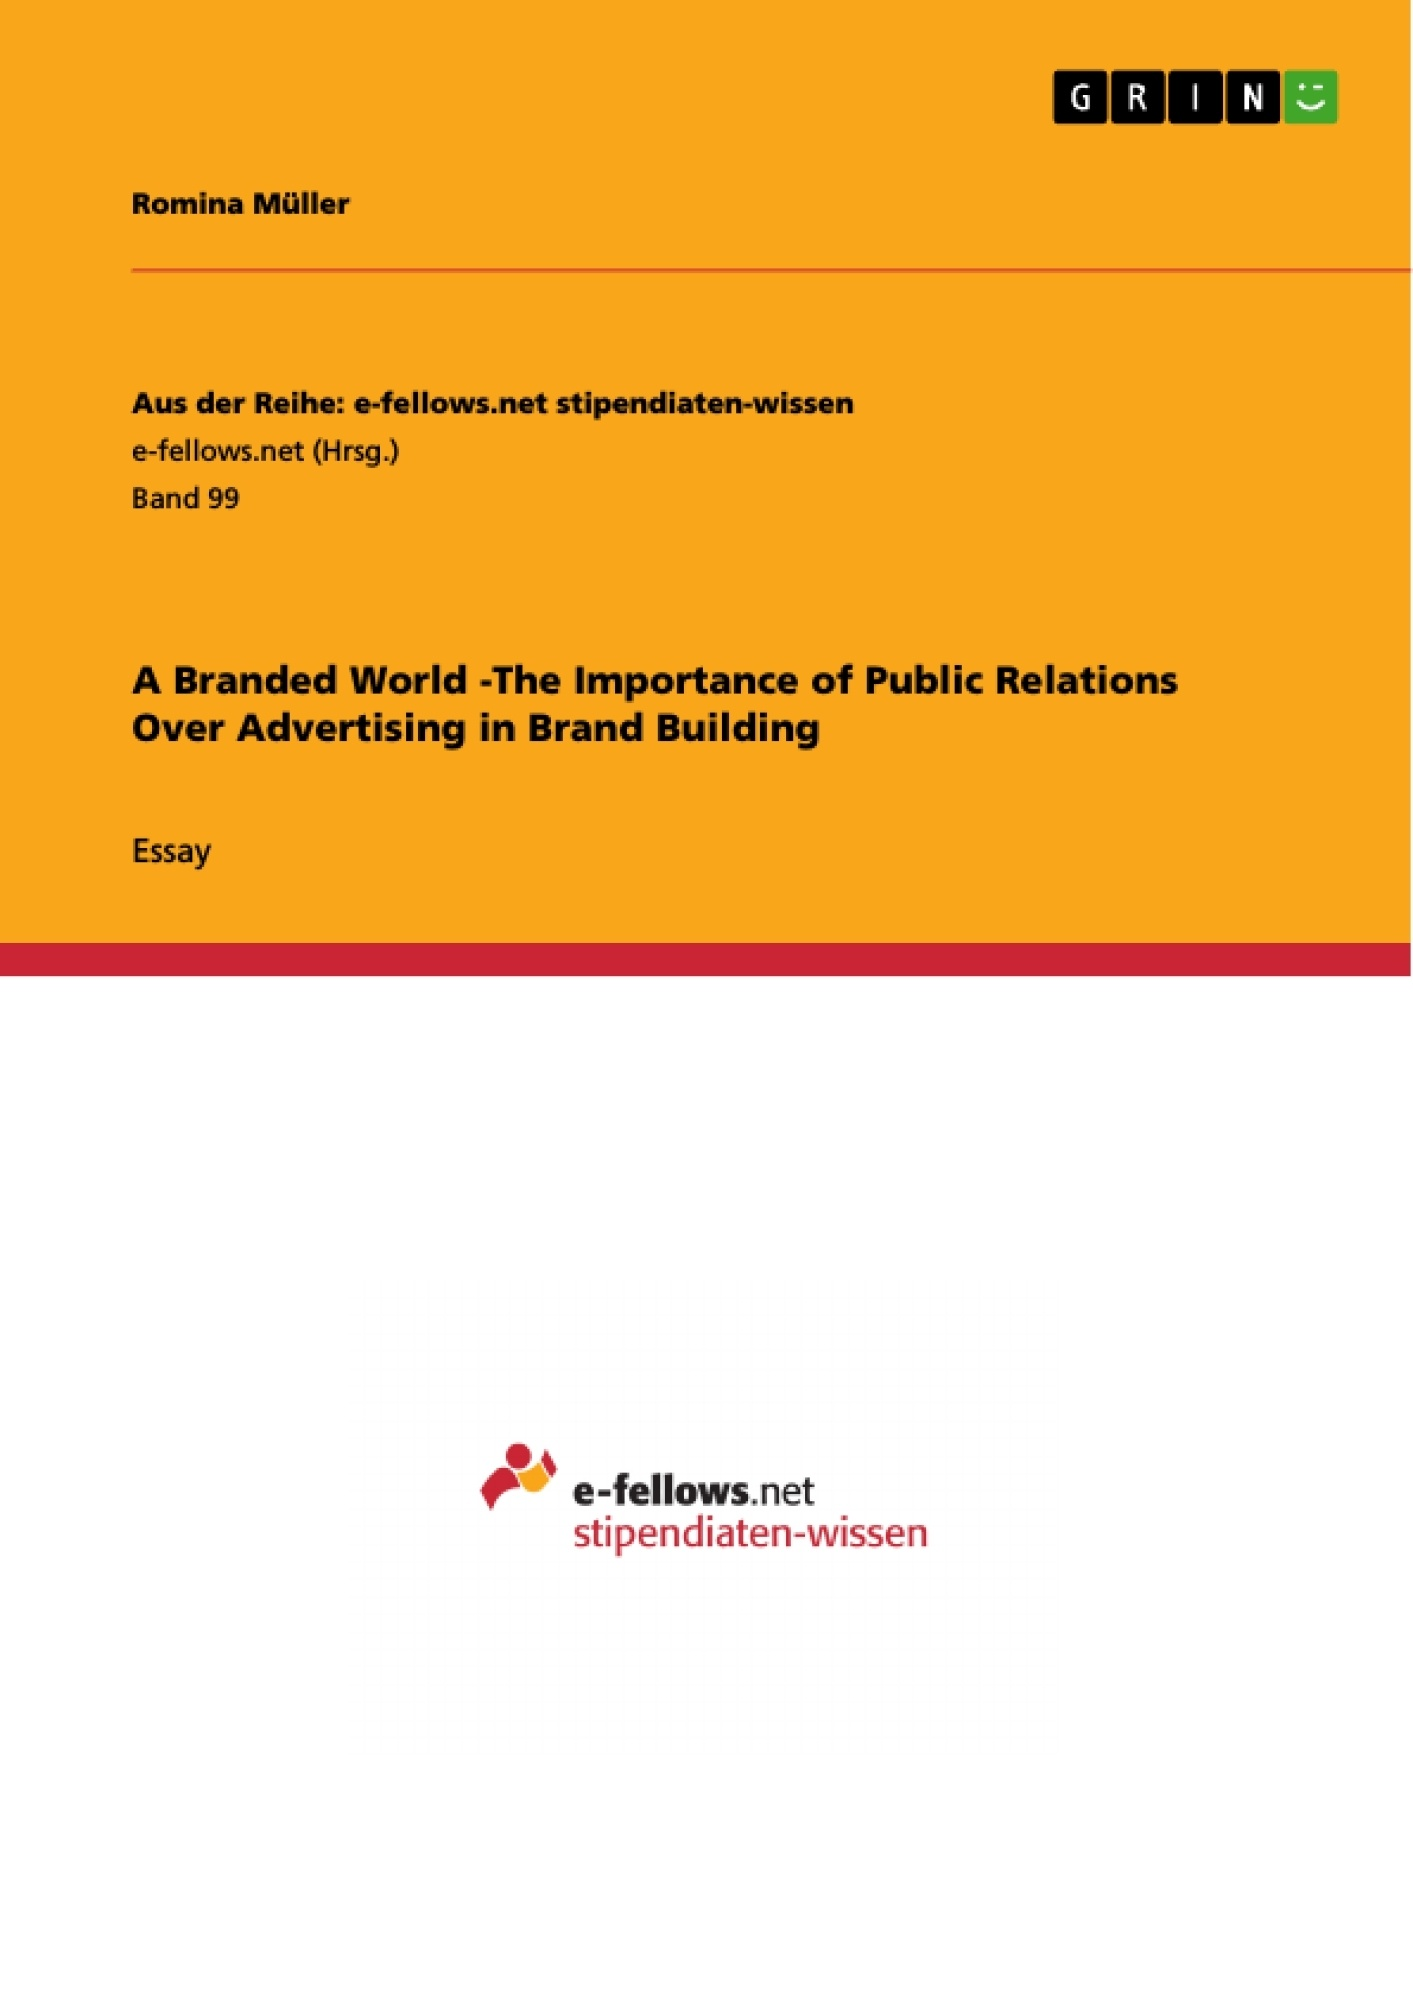 what is the importance of public relations